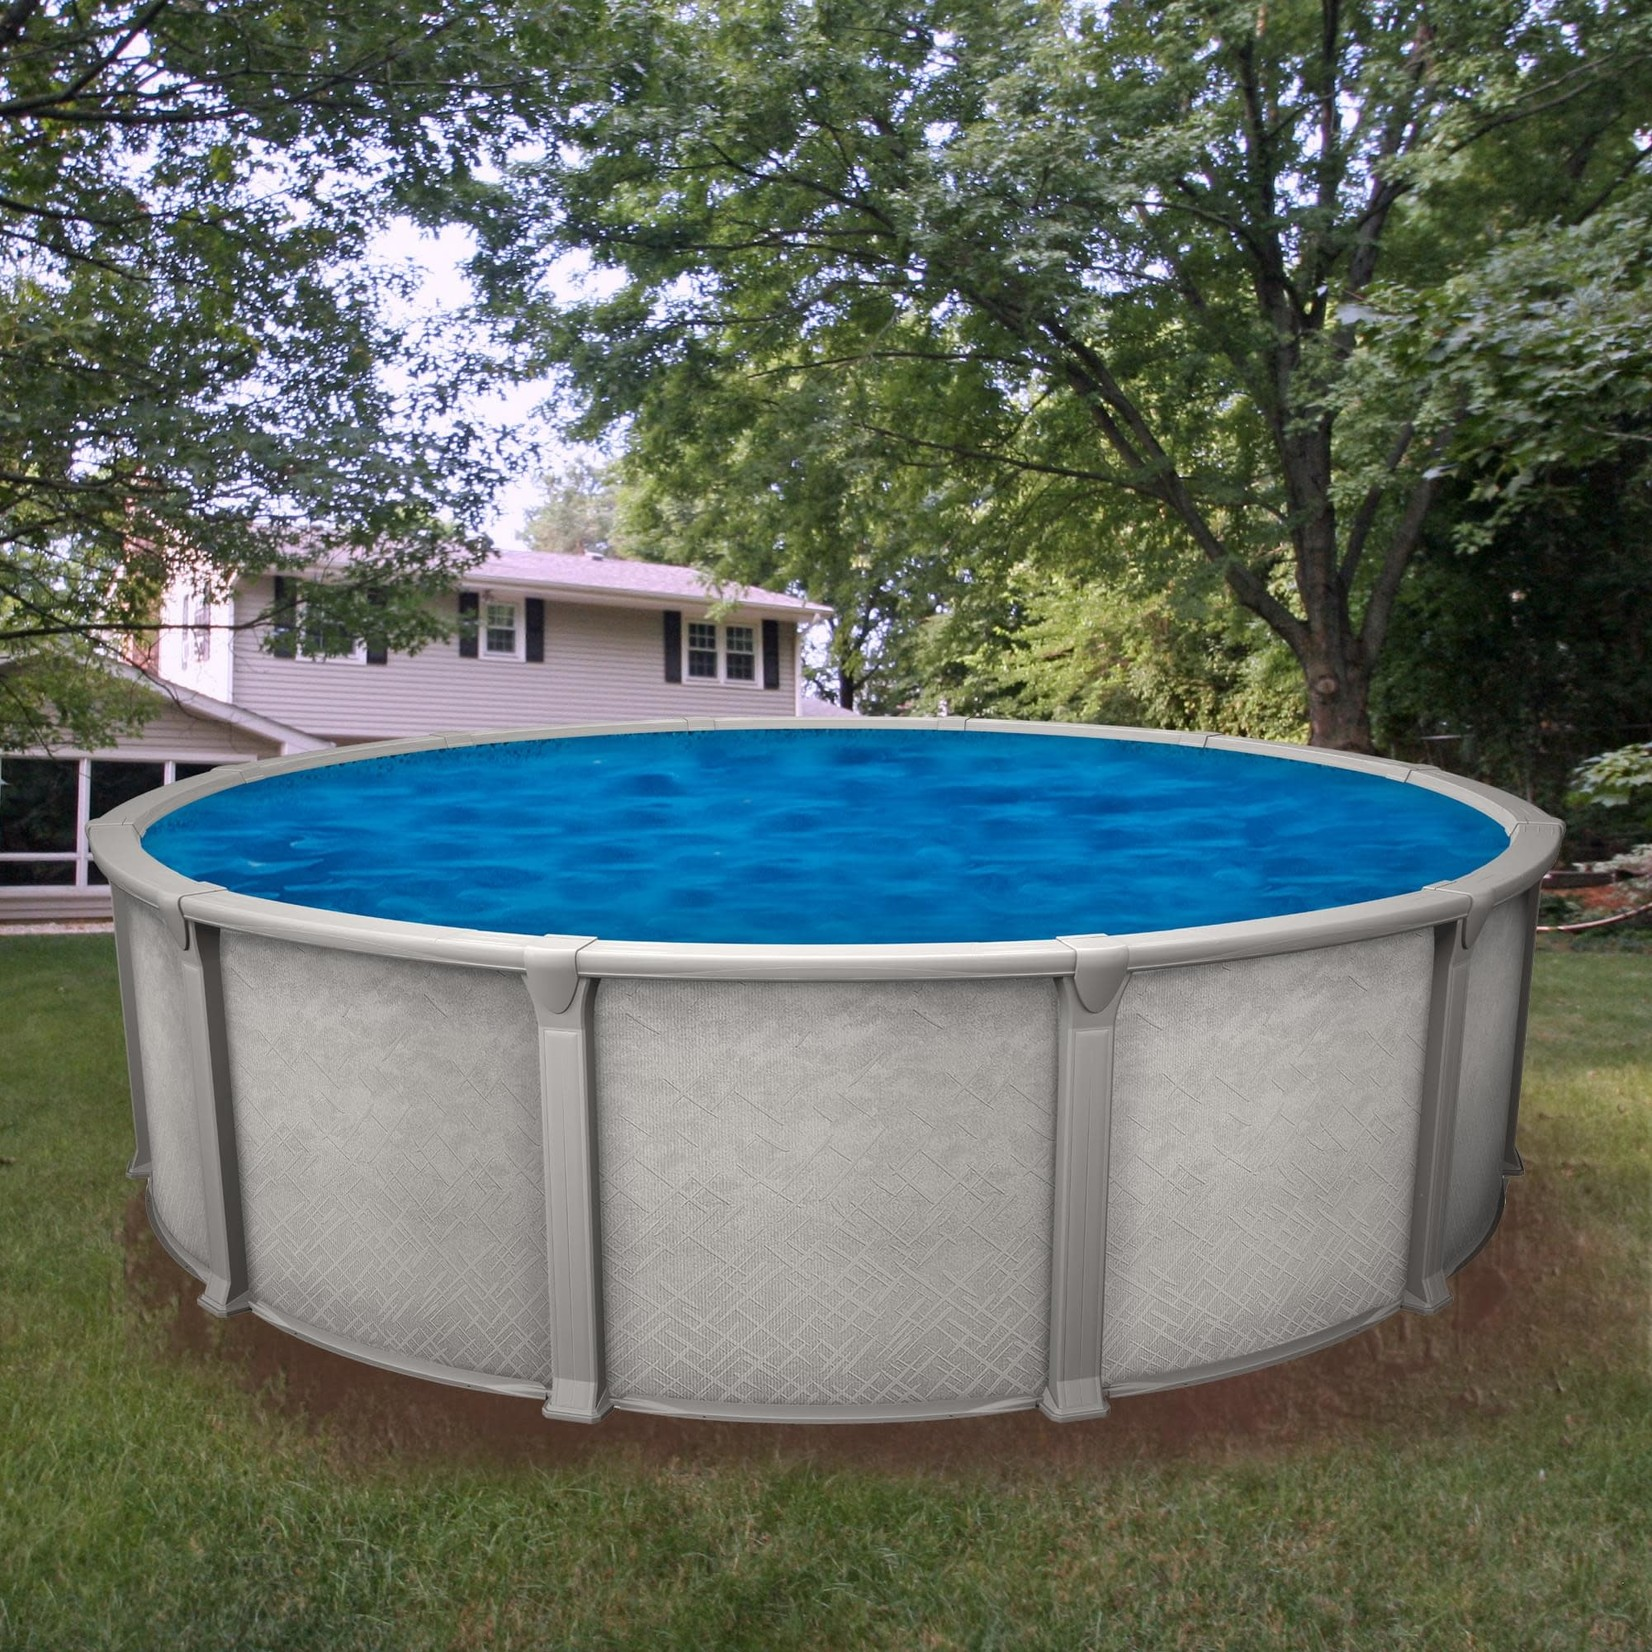 Eclipse ABOVE GROUND POOL ECLIPSE 21FT ROUND RESIN KIT